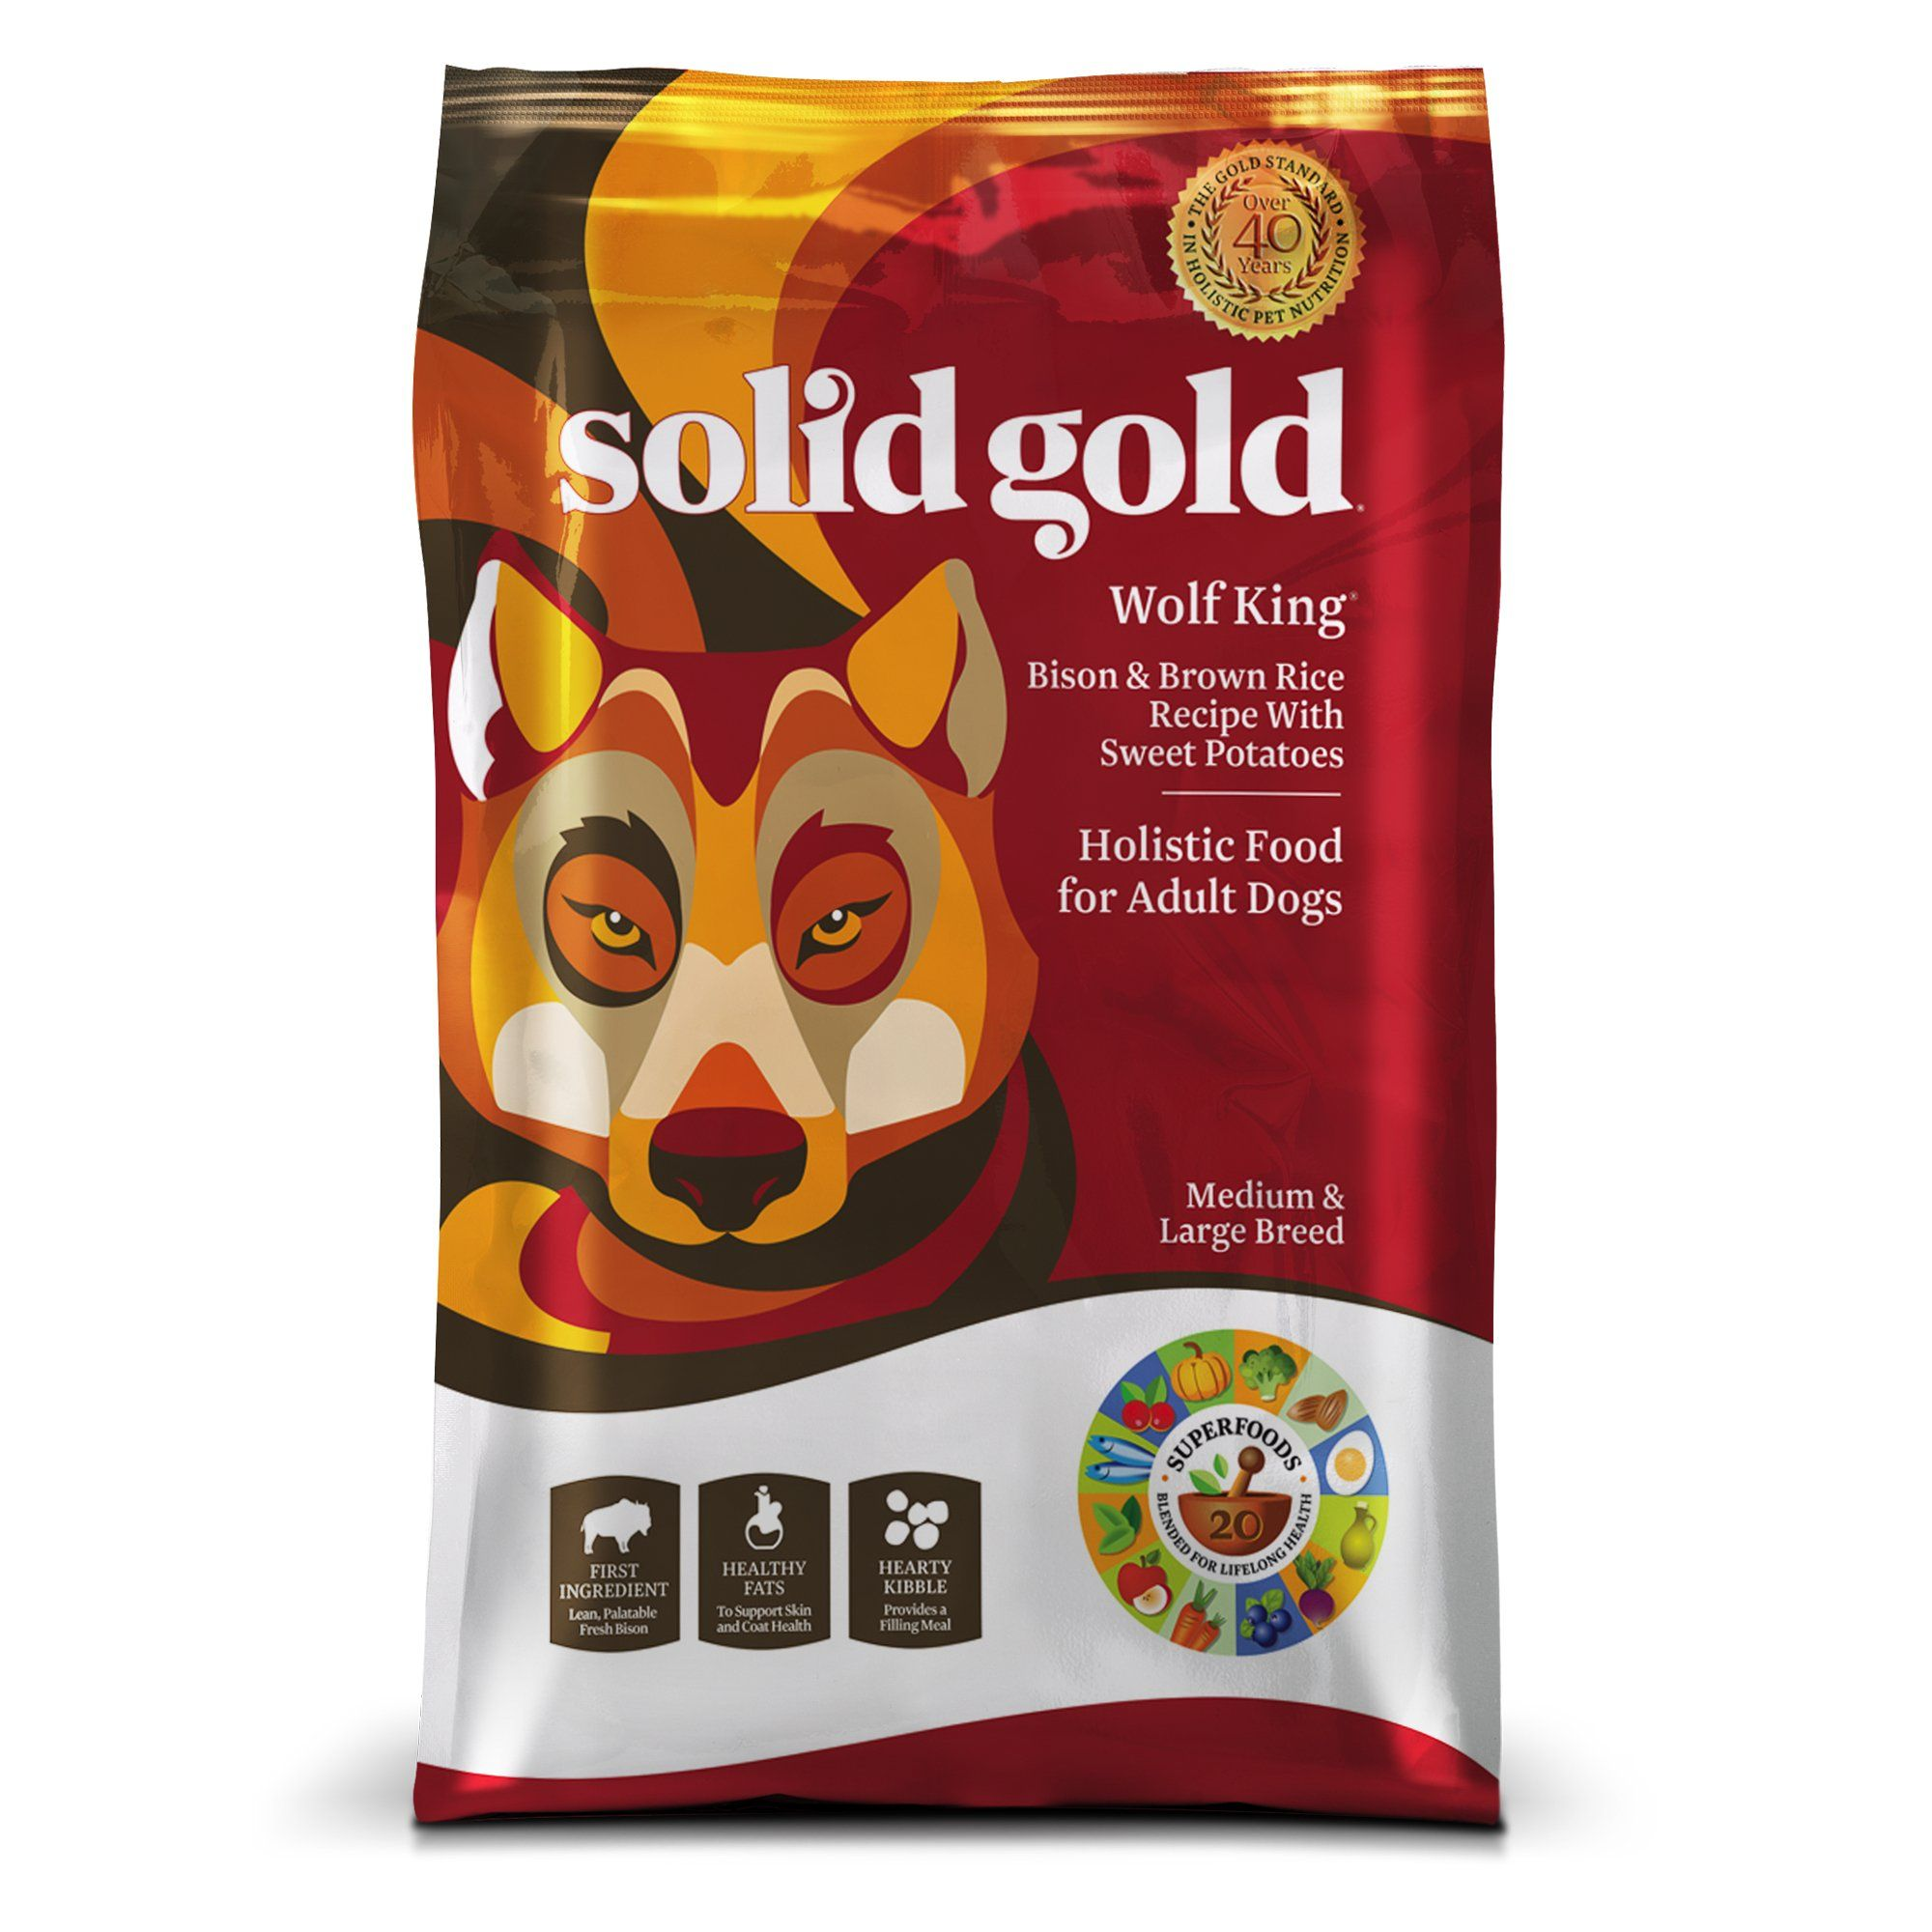 Solid Gold Wolf King Bison Brown Rice Sweet Potatoes Adult Dog